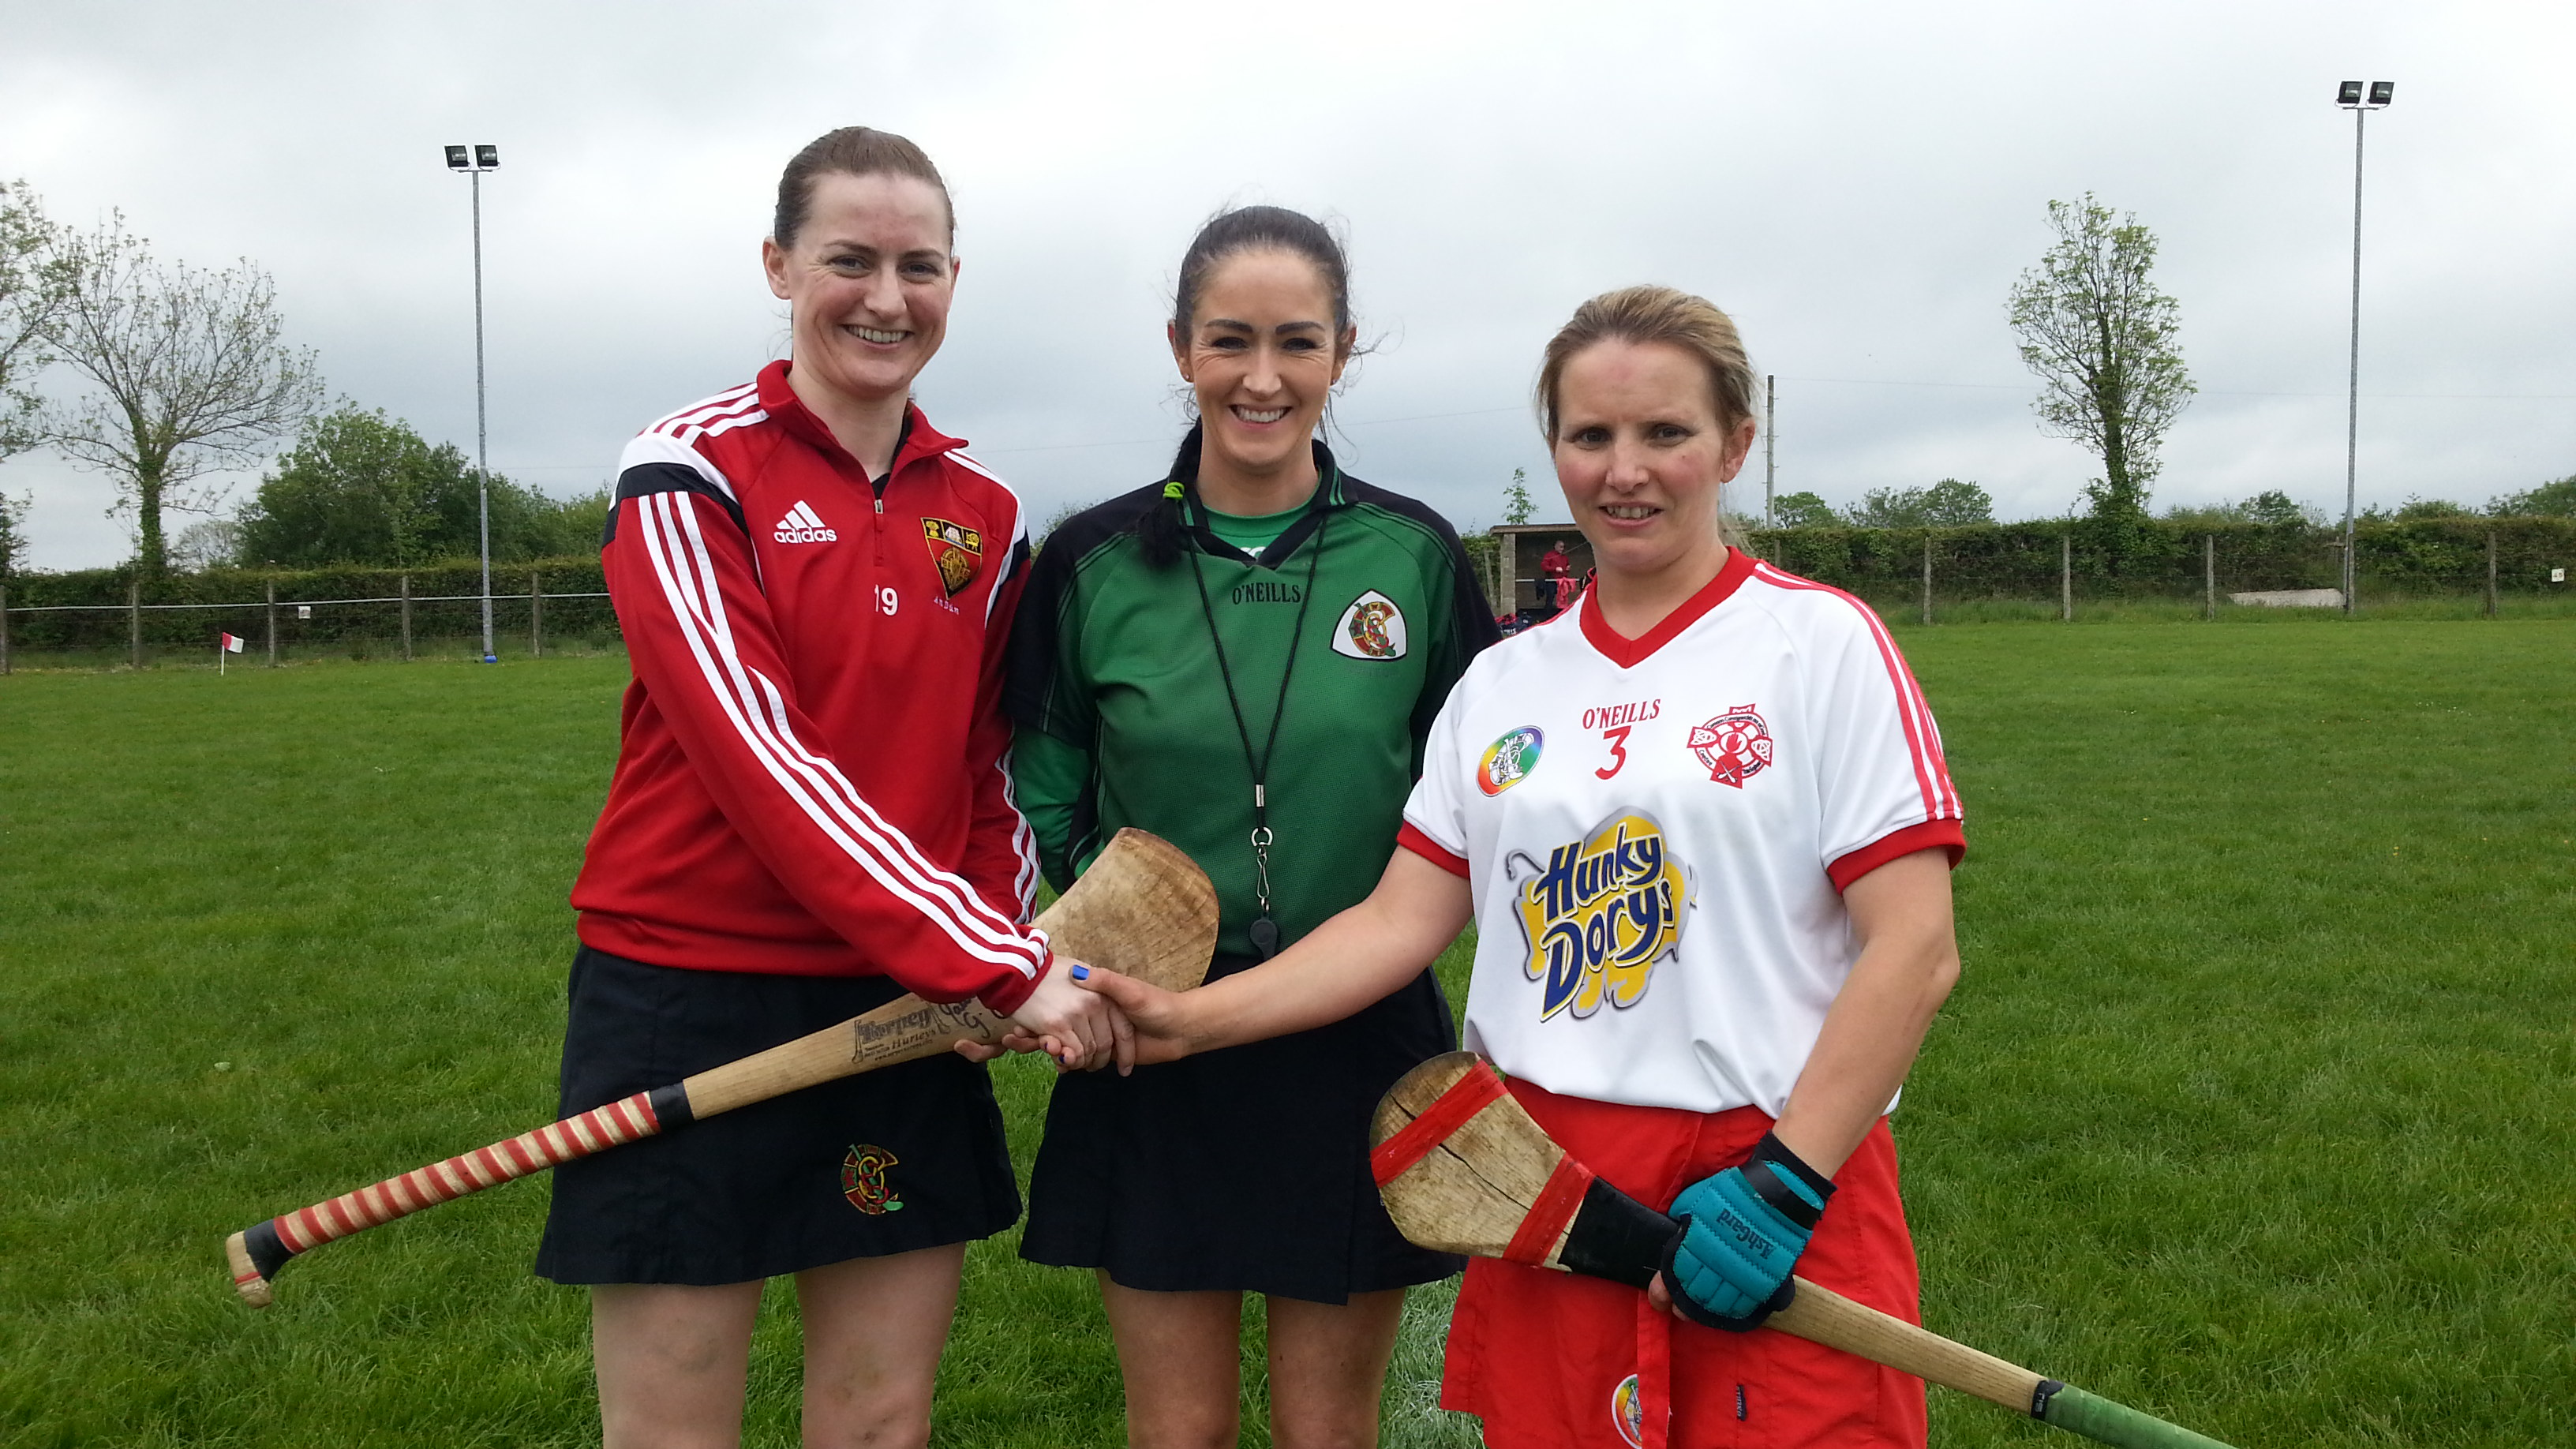 Tyrone v Cavan Ulster Intermediate Camogie Final this Sunday